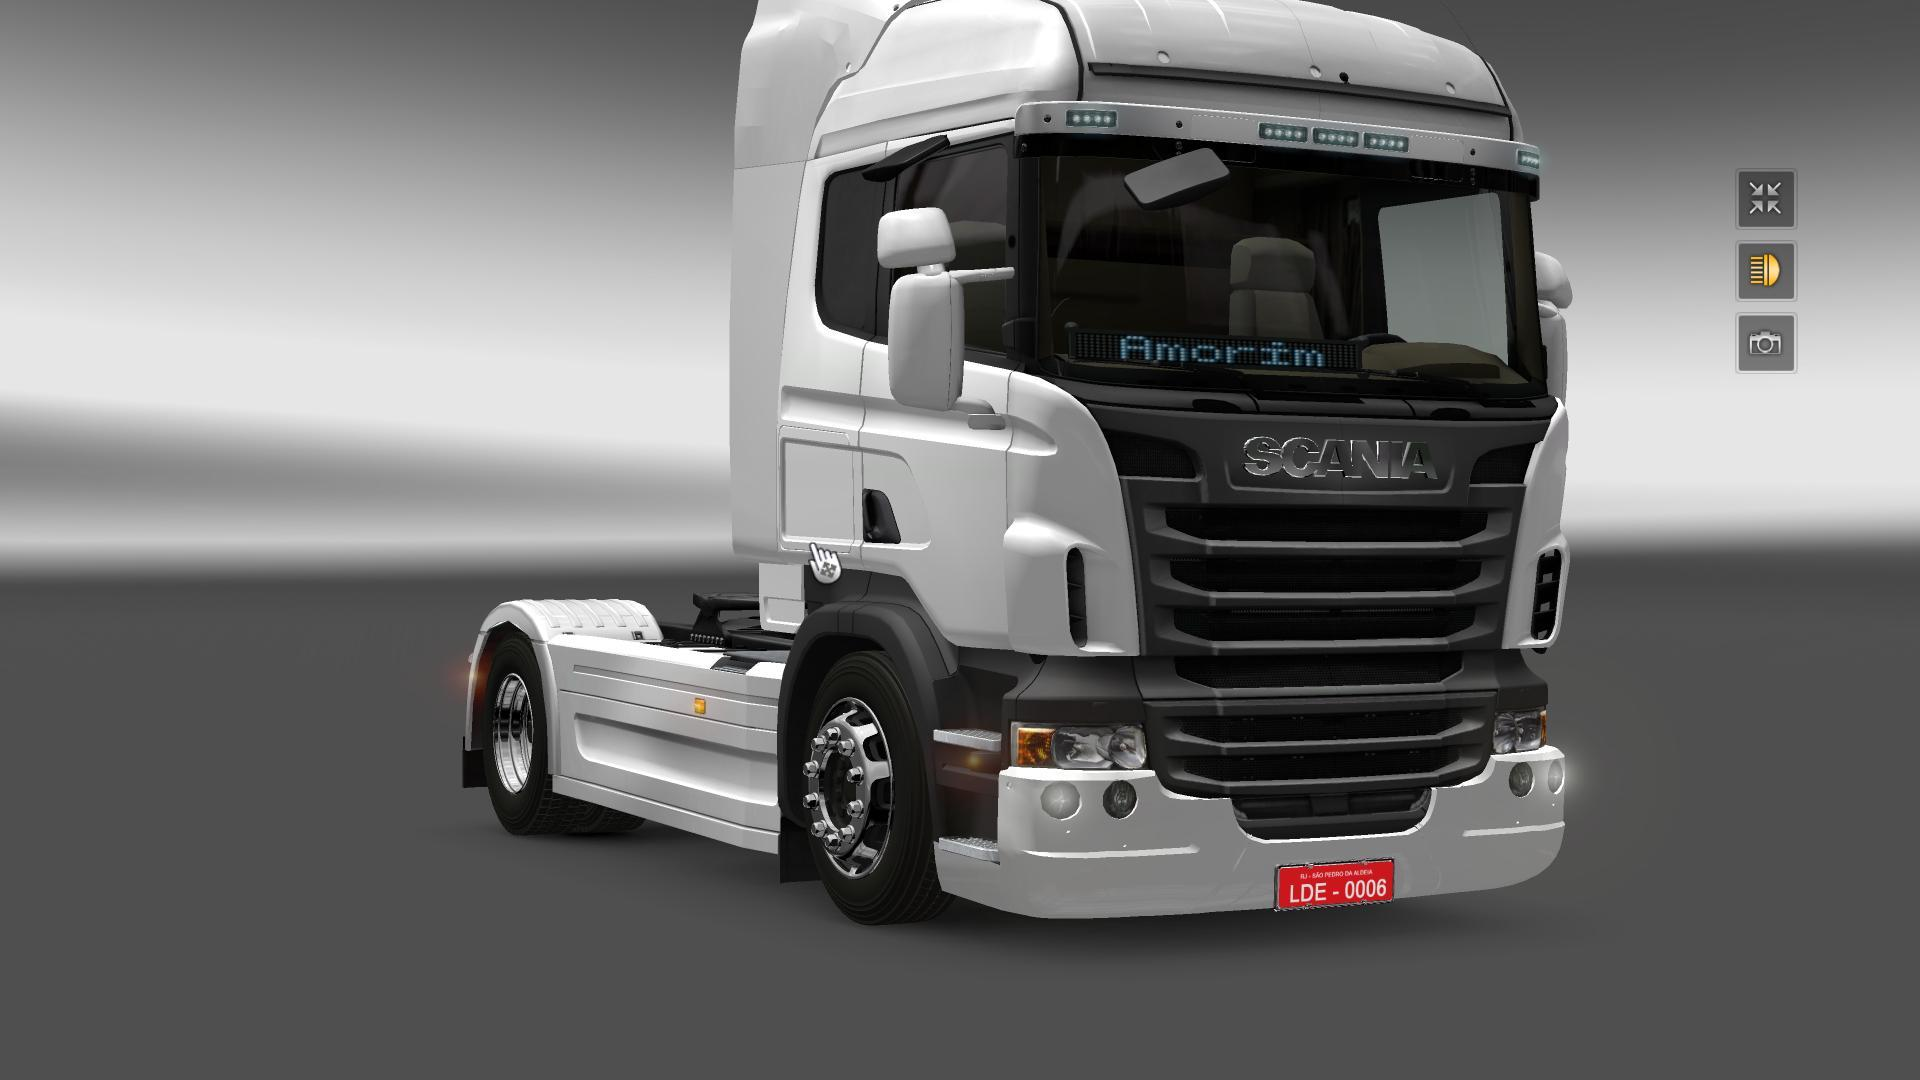 New Wheels For Scania Tuning Mod Euro Truck Simulator 2